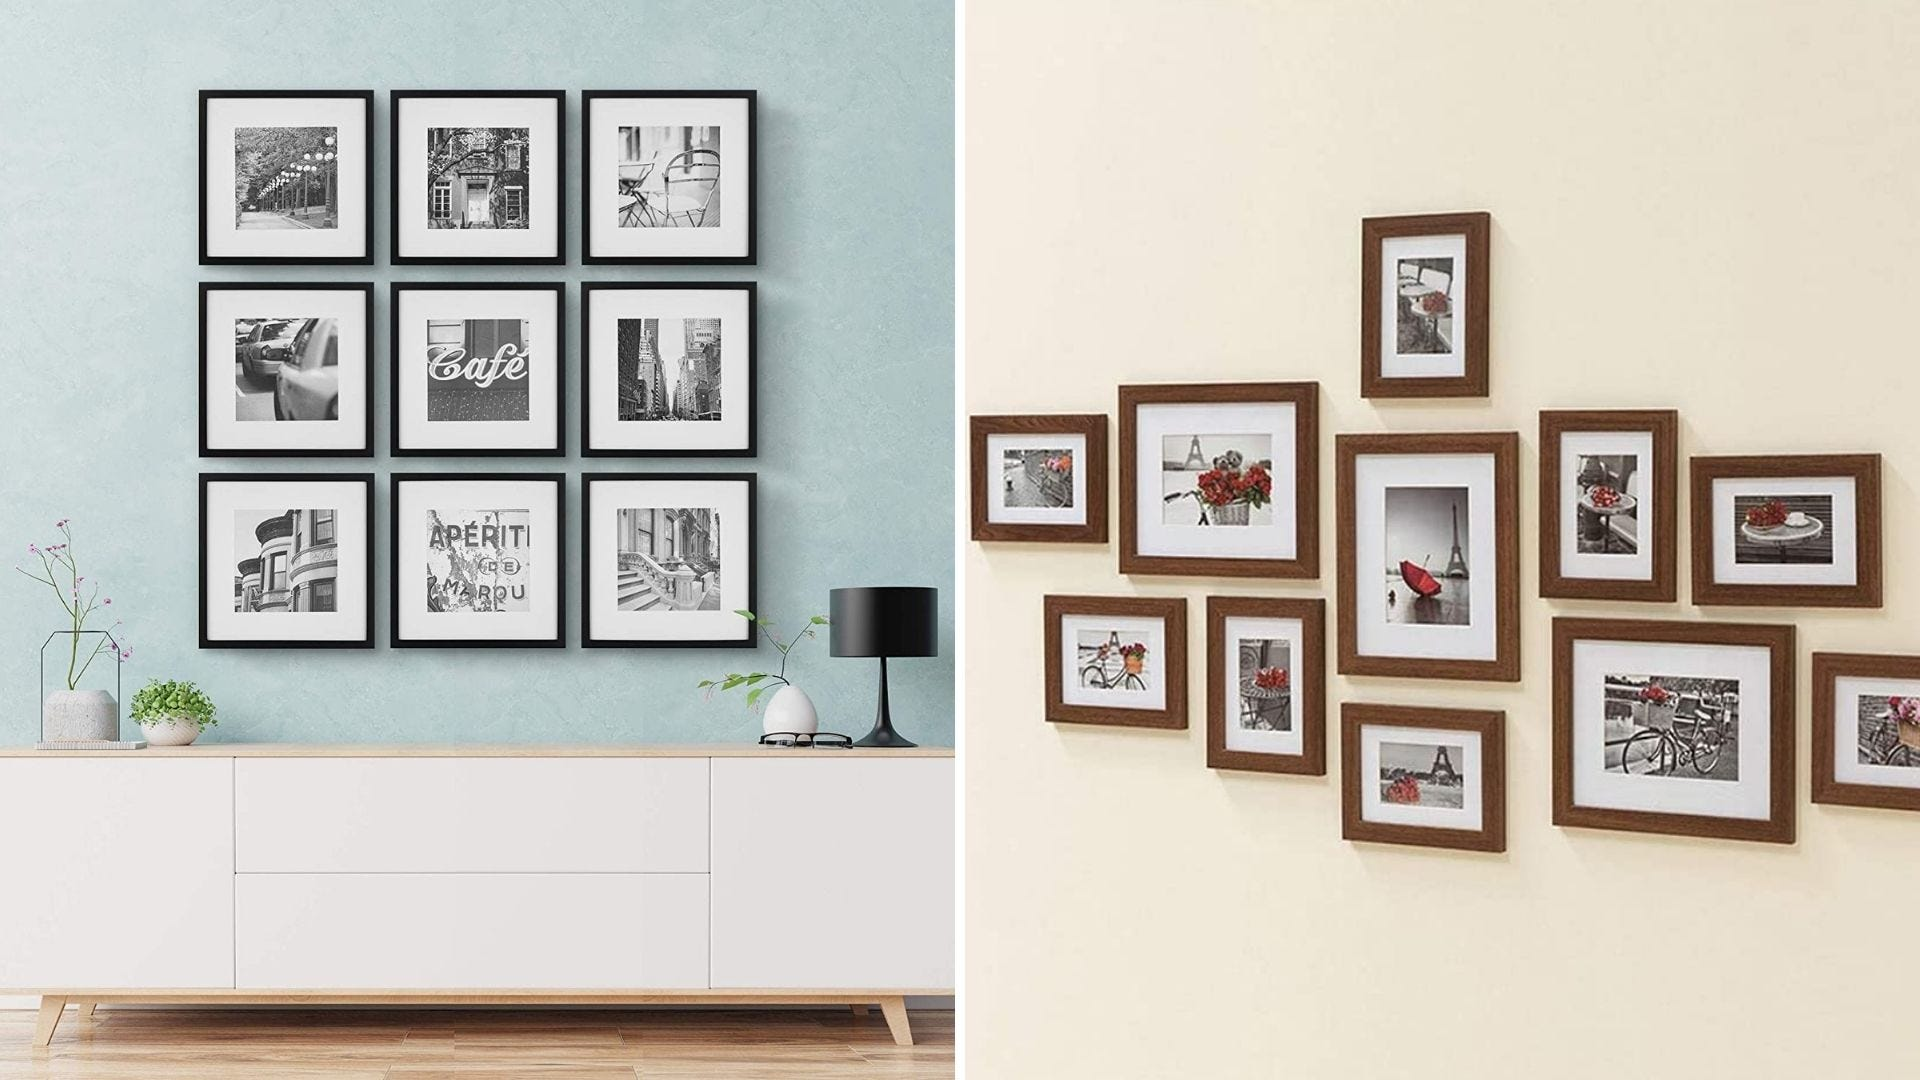 Many photos in frames on the wall